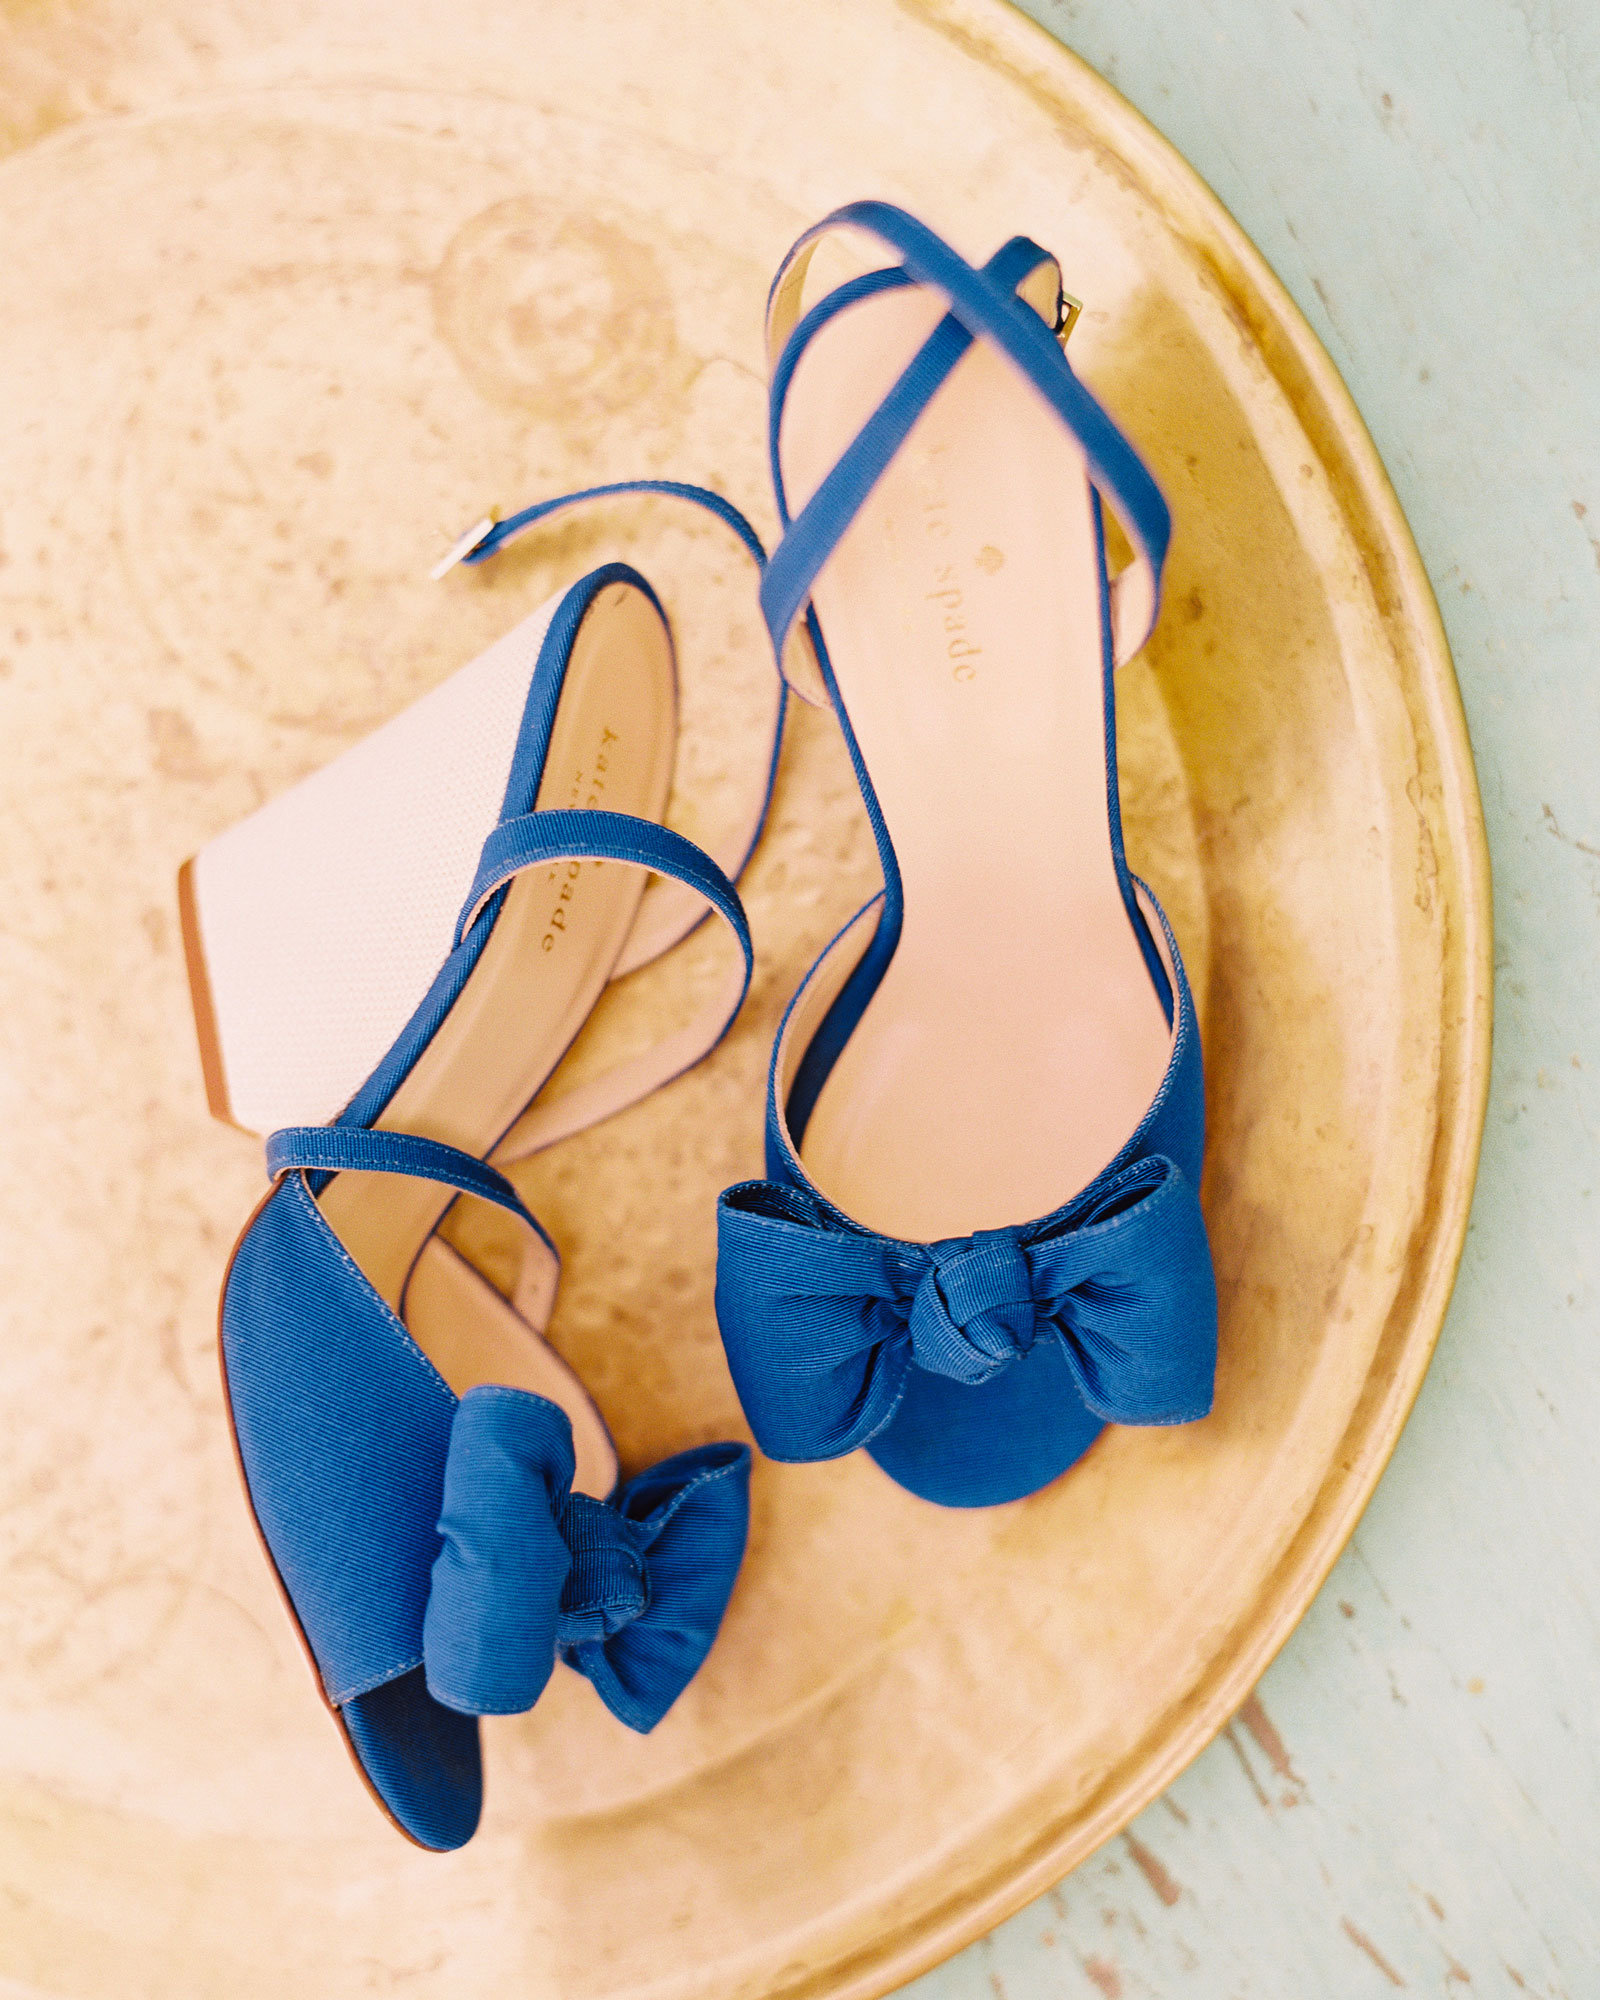 kelly-jeff-wedding-palm-springs-blue-shoes-0175-s112234.jpg